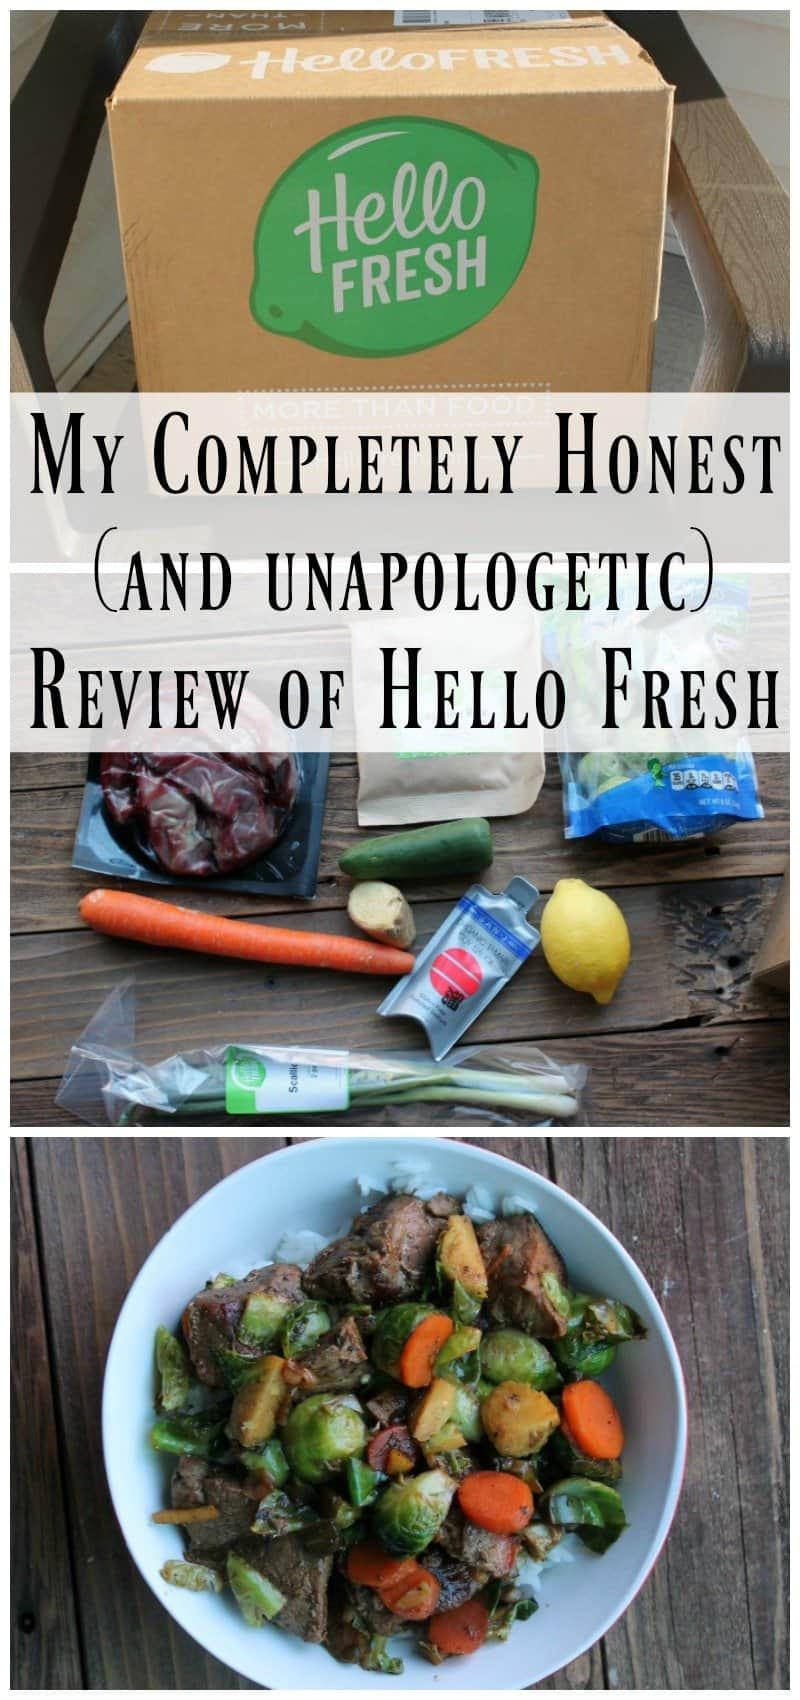 My Completely Honest (and unapologetic) Review of Hello Fresh